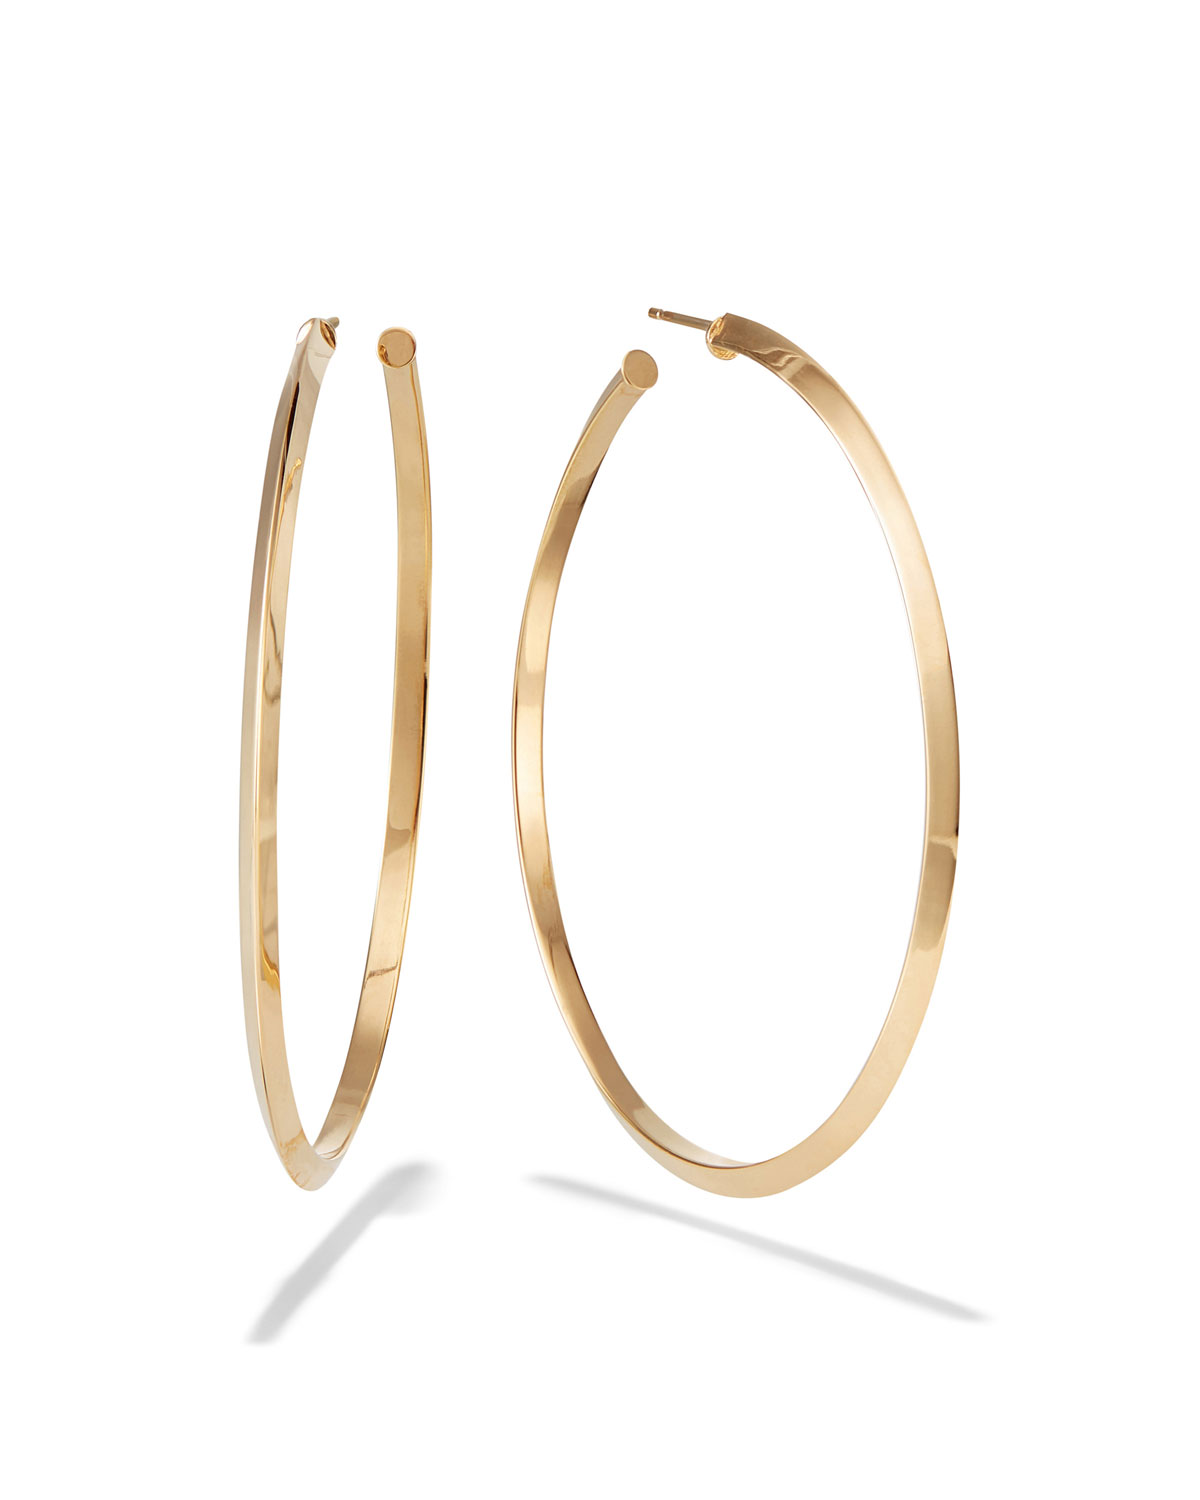 Lana  14K GOLD KNIFE-EDGE HOOP EARRINGS